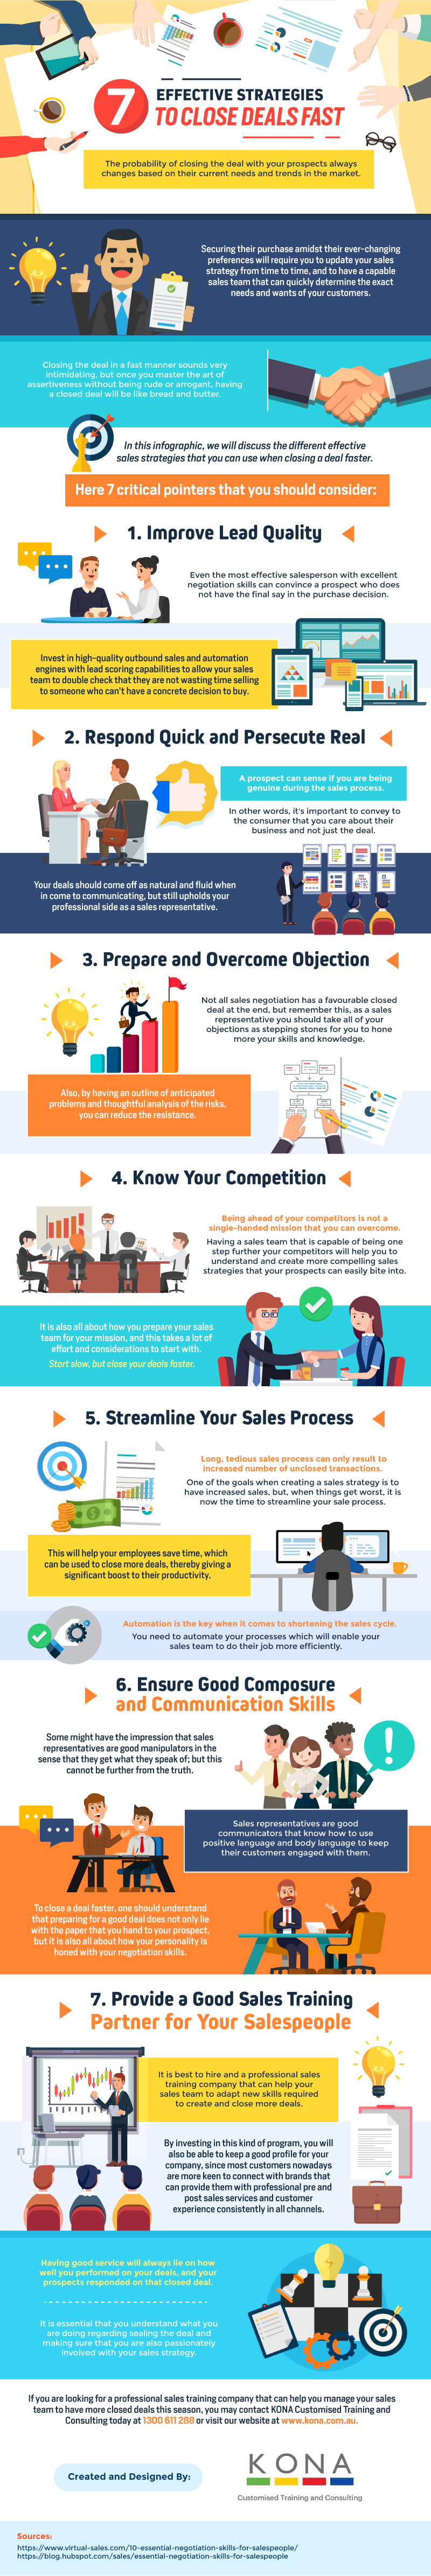 7 Effective Strategies to Close Deals Faster - Infographic